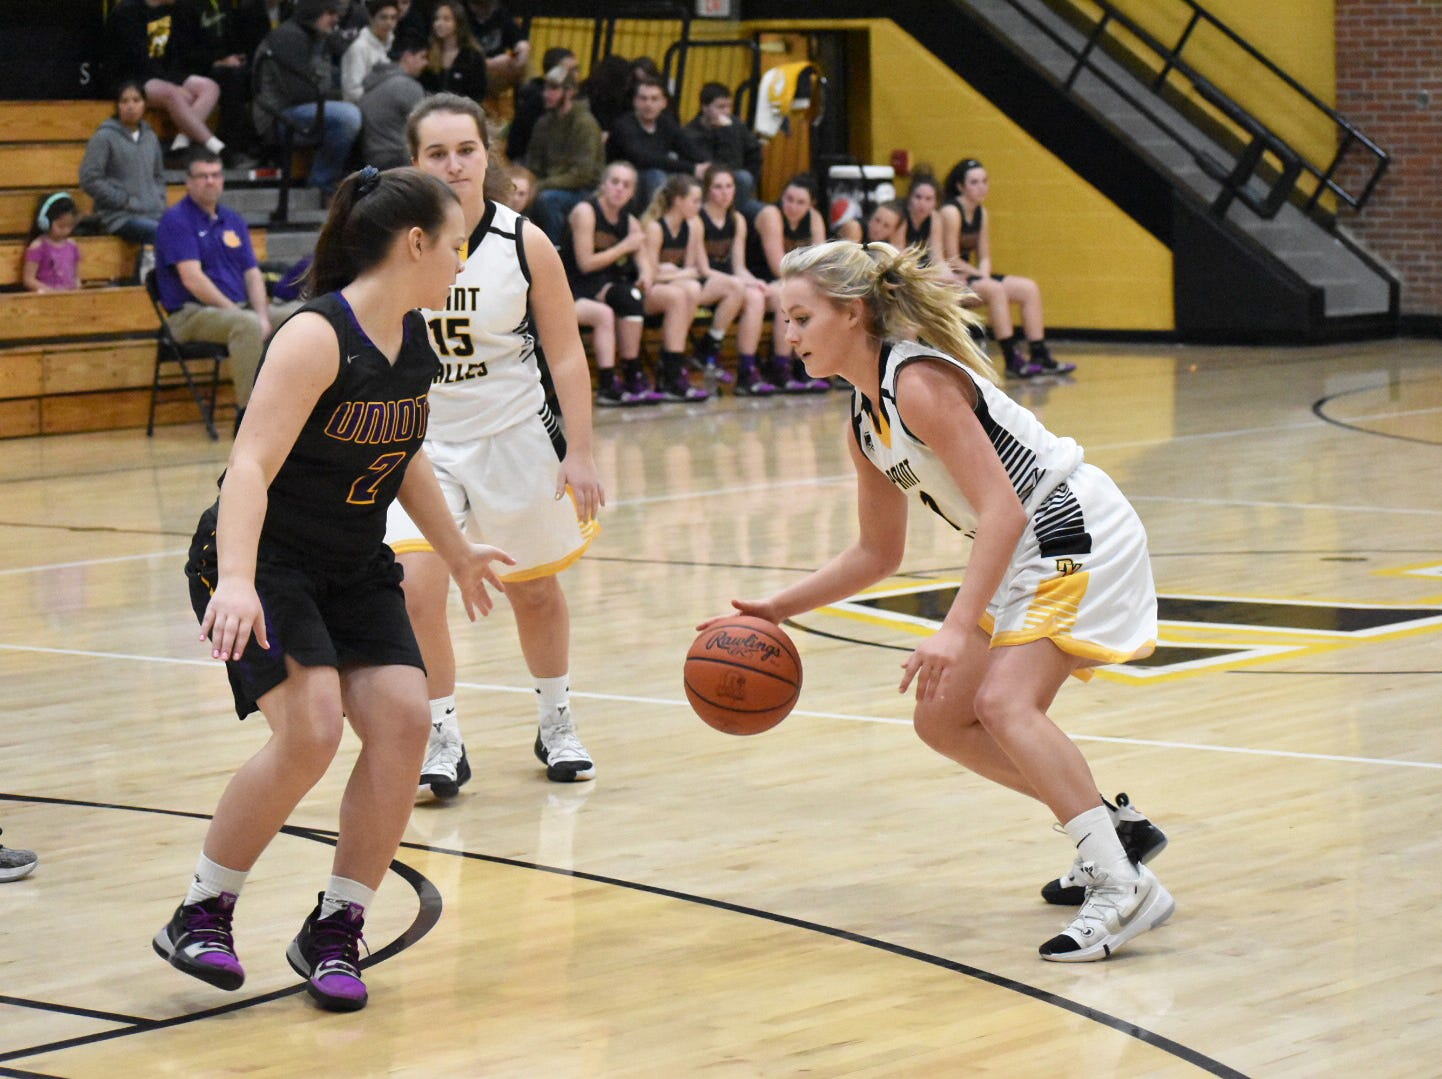 Unioto girls basketball defeated Paint Valley 51-19 at Paint Valley High School on Tuesday as the Shermans remained undefeated in the SVC.